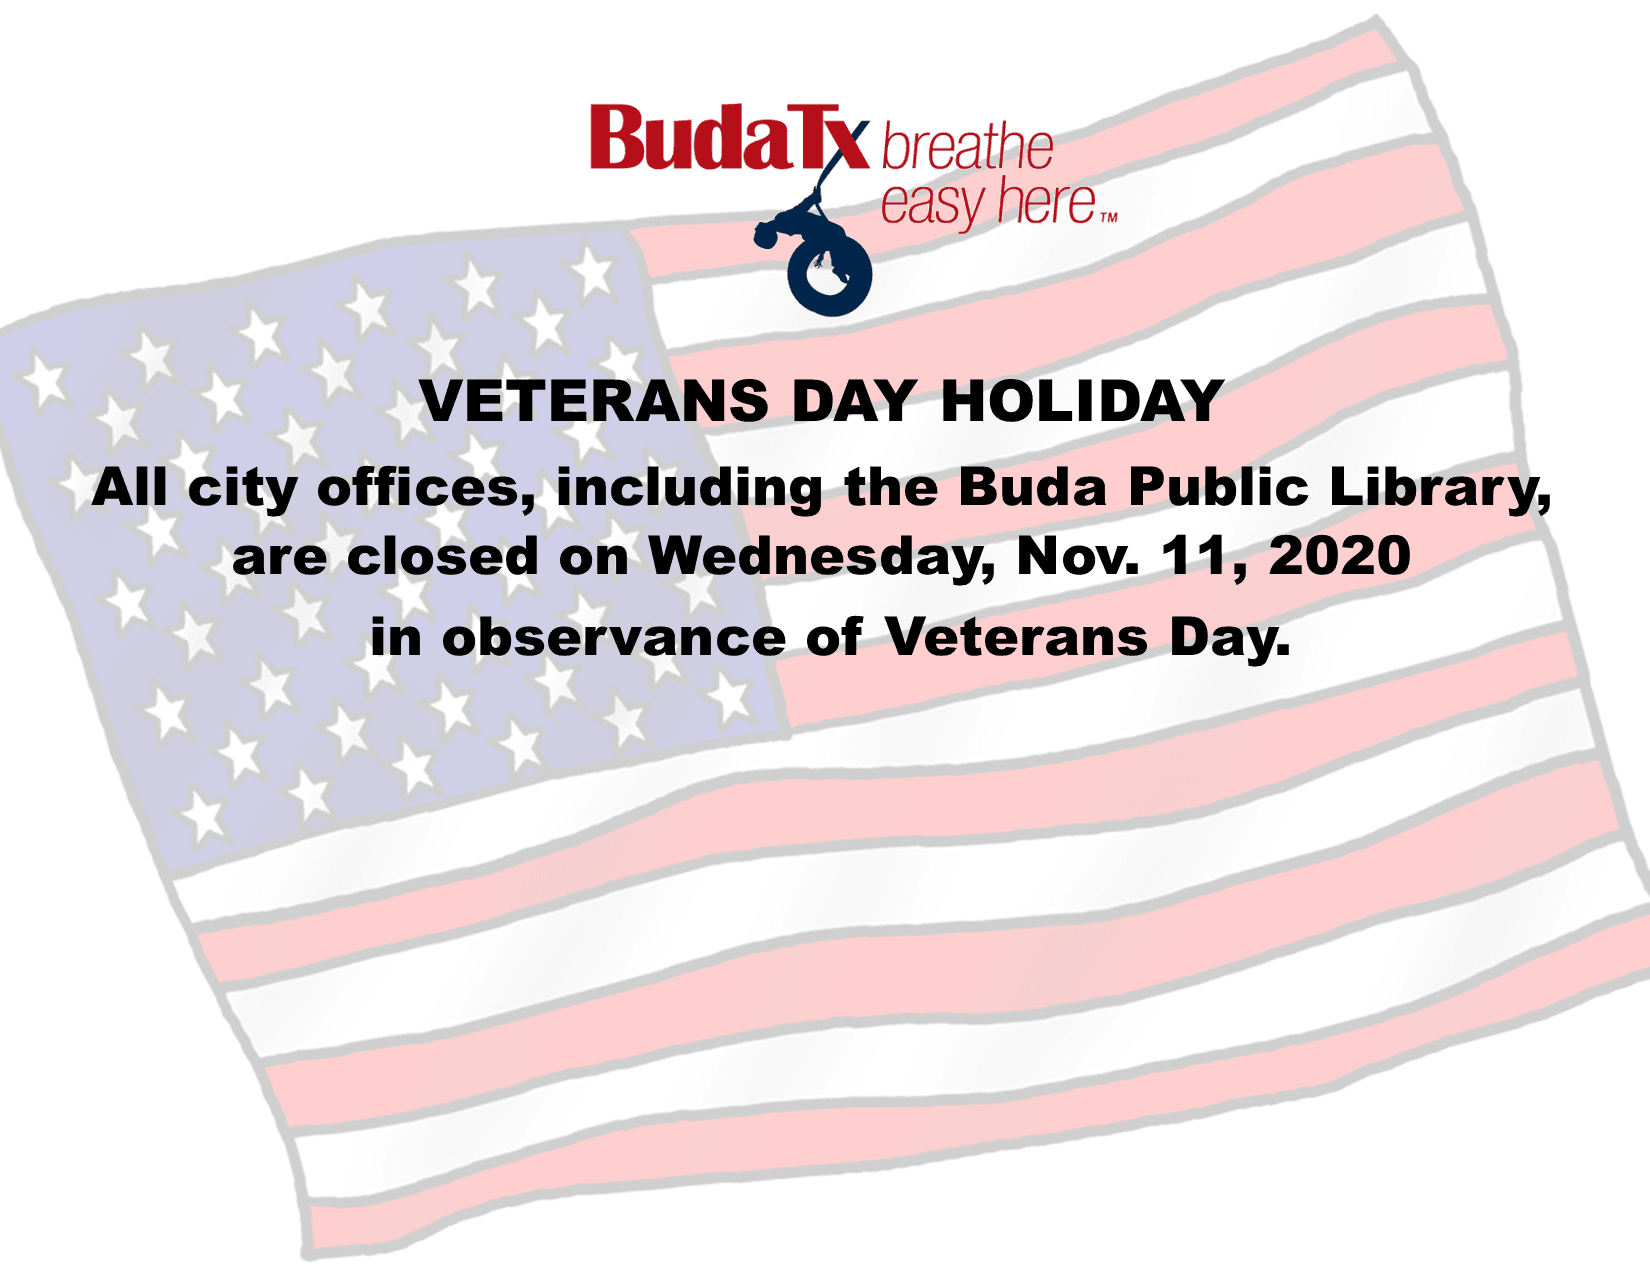 Veterans Day Holiday 2020